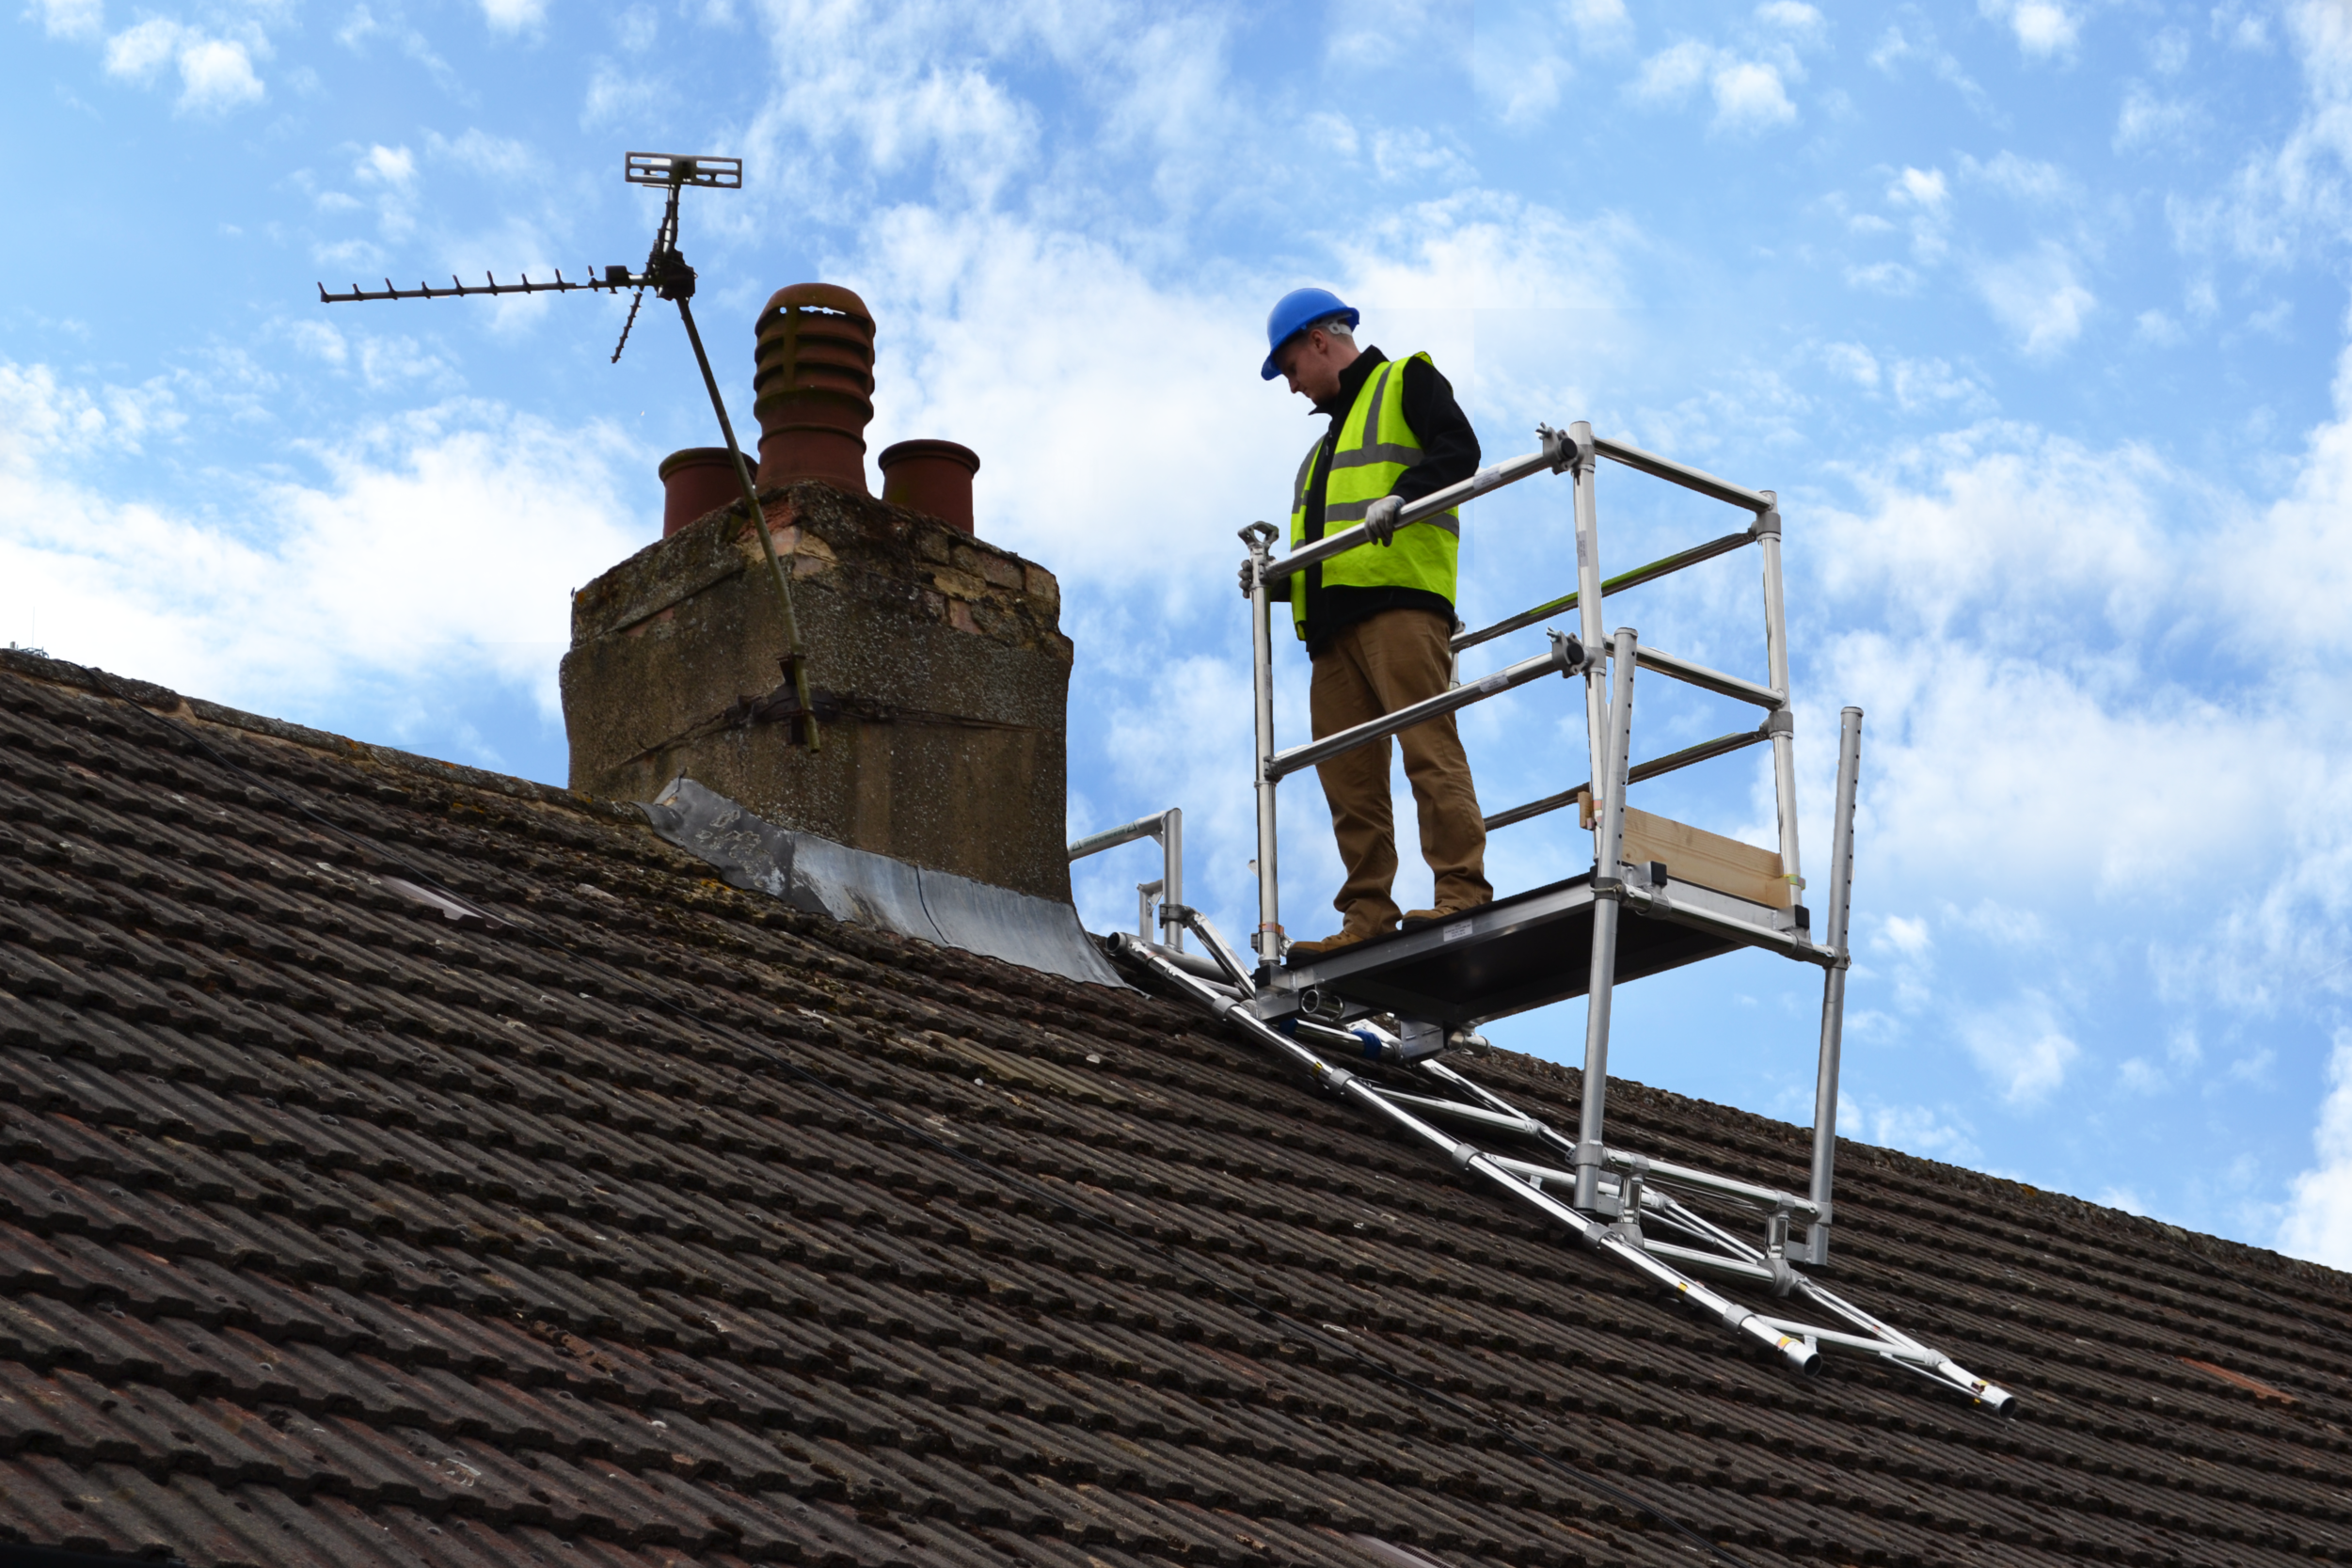 MK tower services, chimney scaffold, aluminium access, chimney scaffolding, roof access